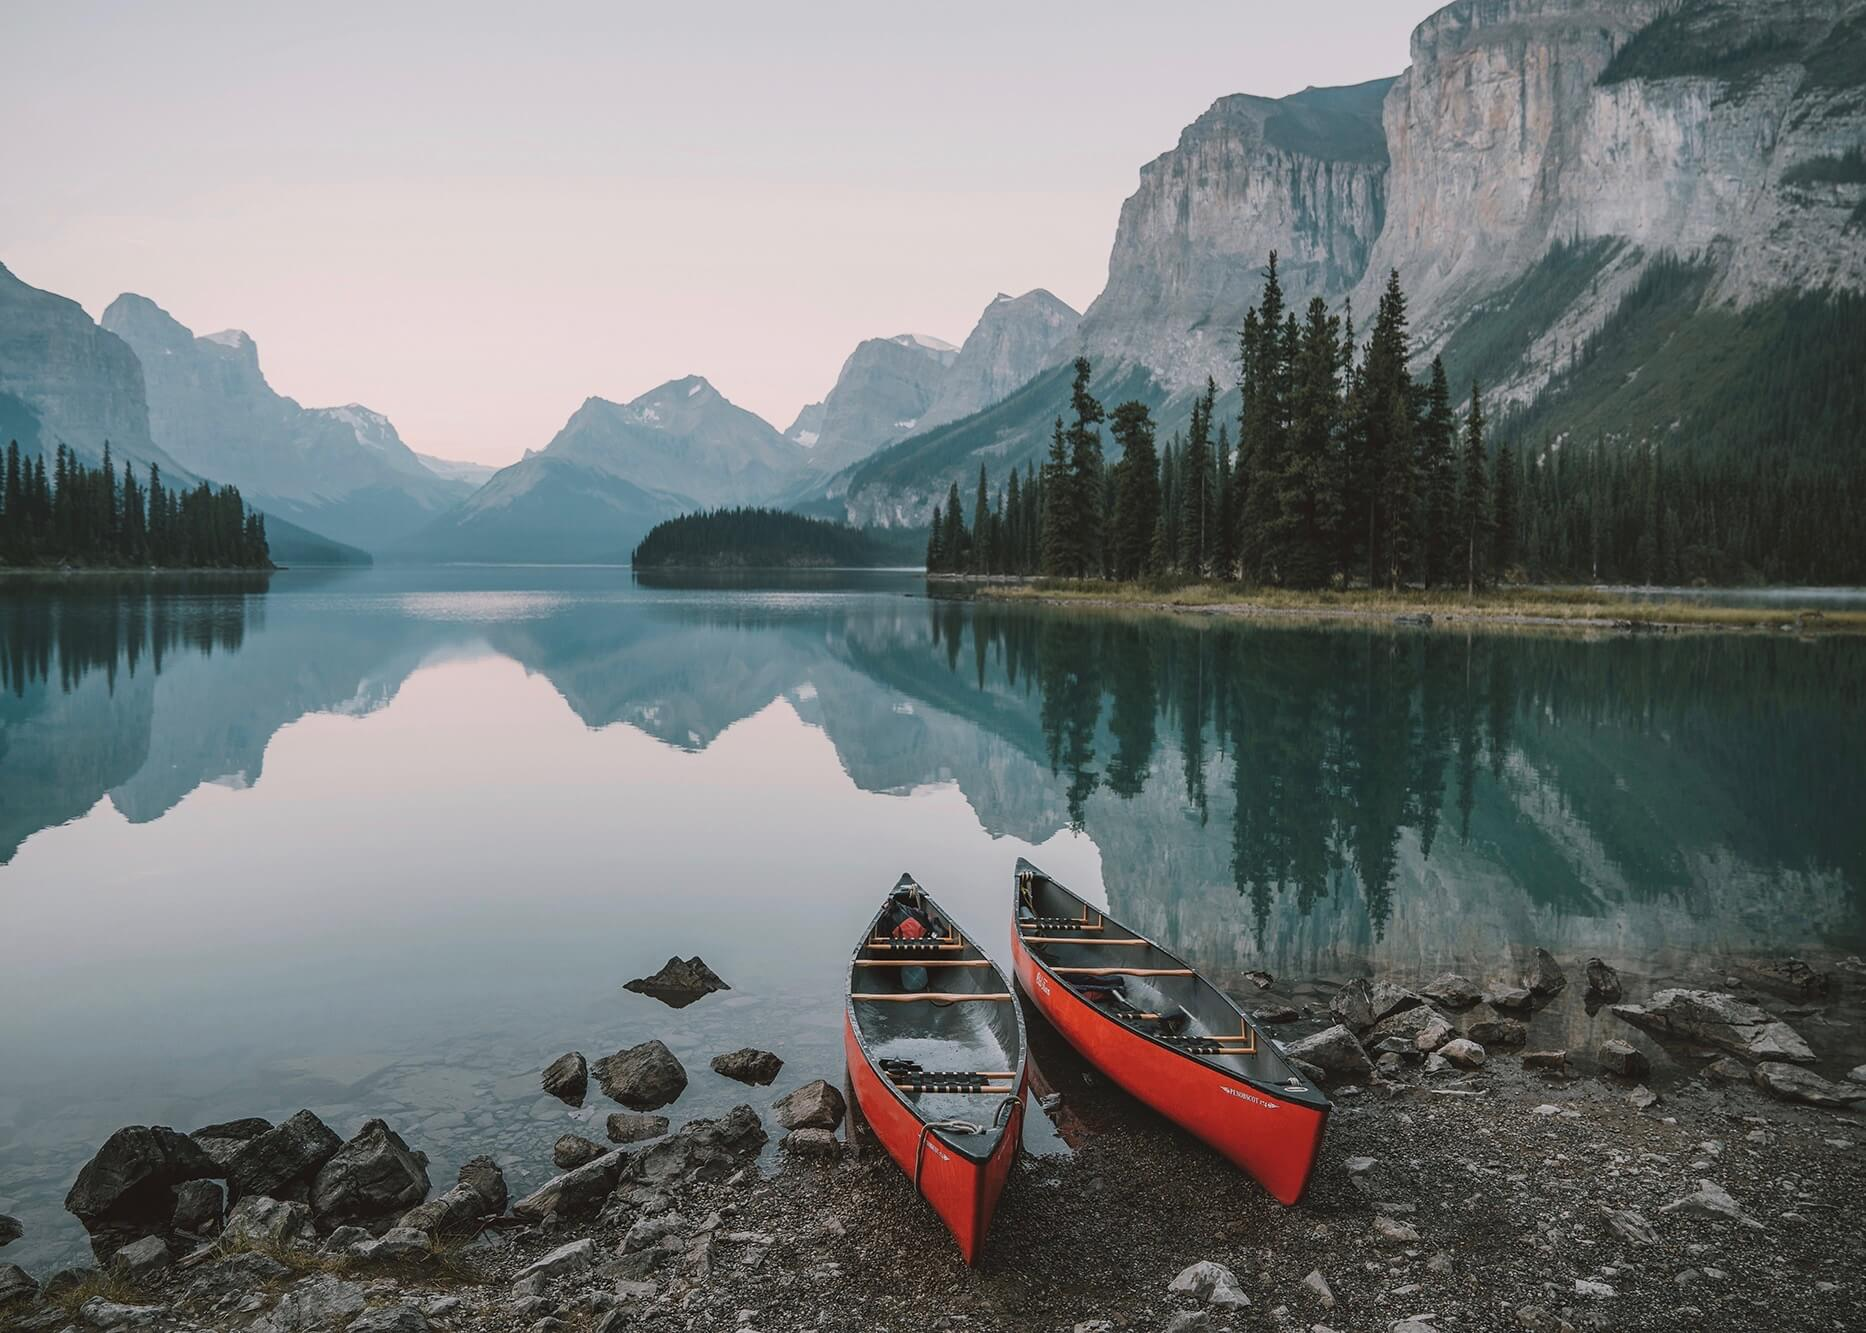 Emilie Ristevski photo of two empty canoes on the shore of an alpine lake